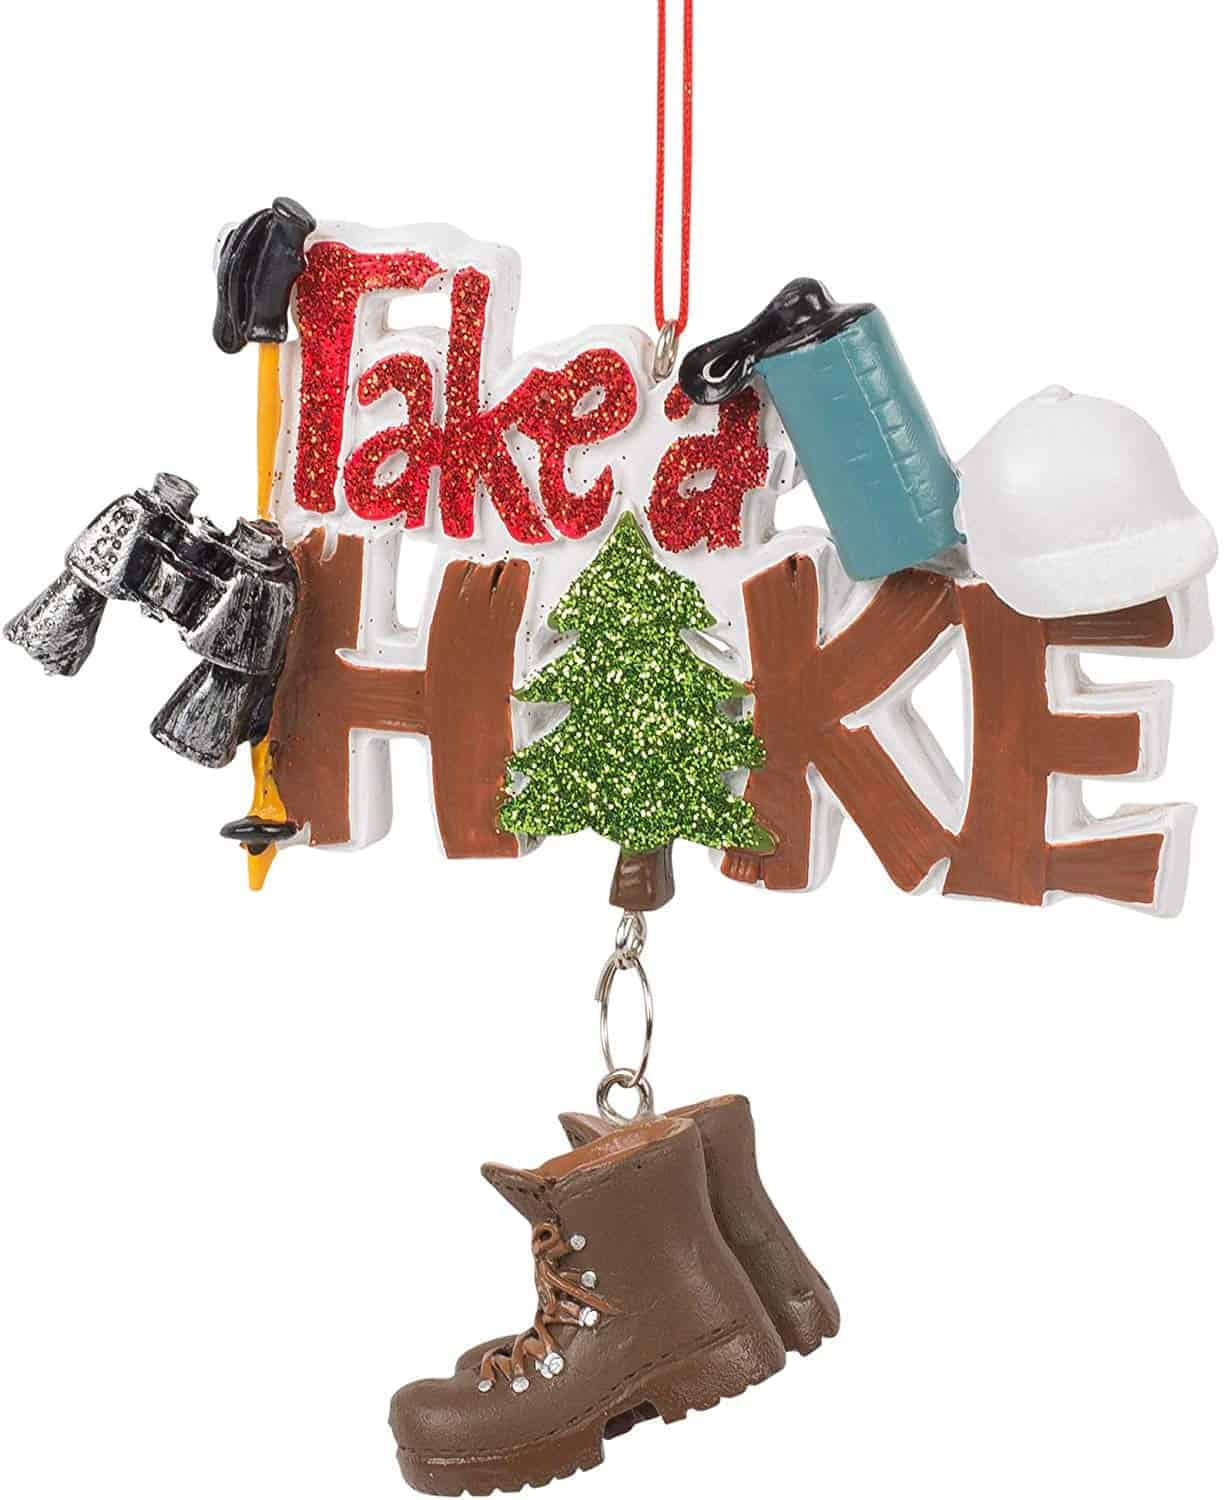 Take a hike Christmas ornament